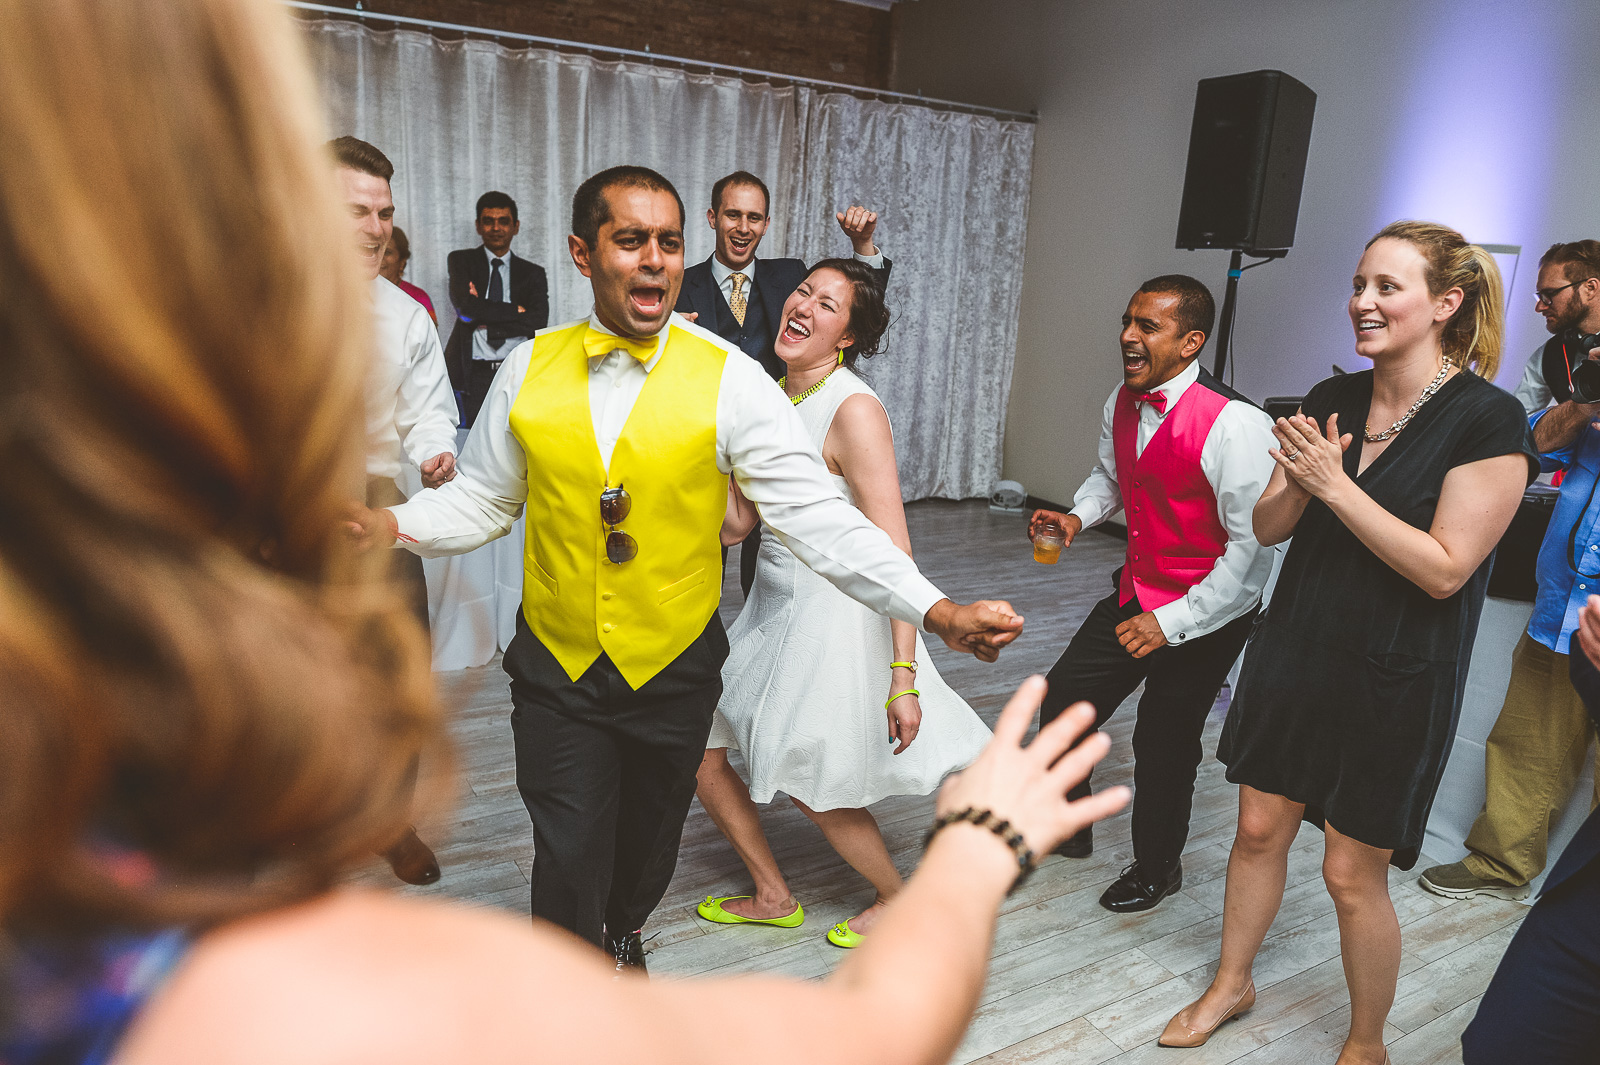 70 bride and groom dancing - Jackie + Raj // Chicago Wedding Photography at Floating World Gallery